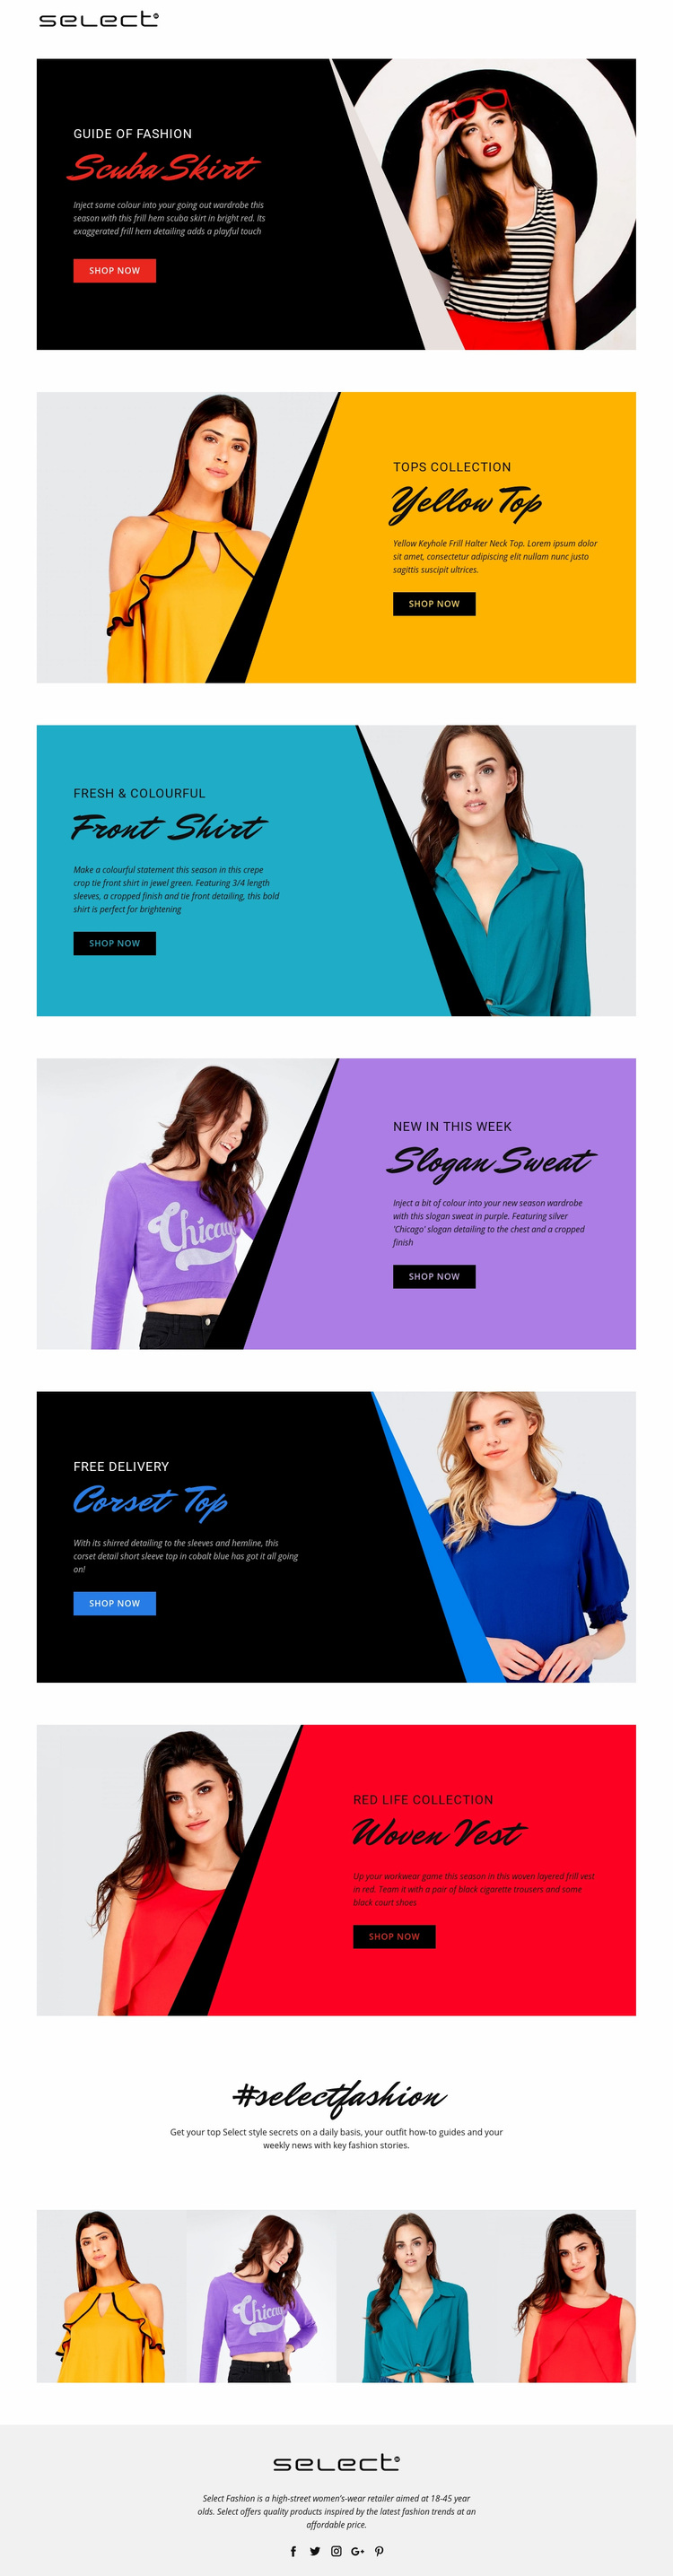 Learn about dress codes Web Page Designer